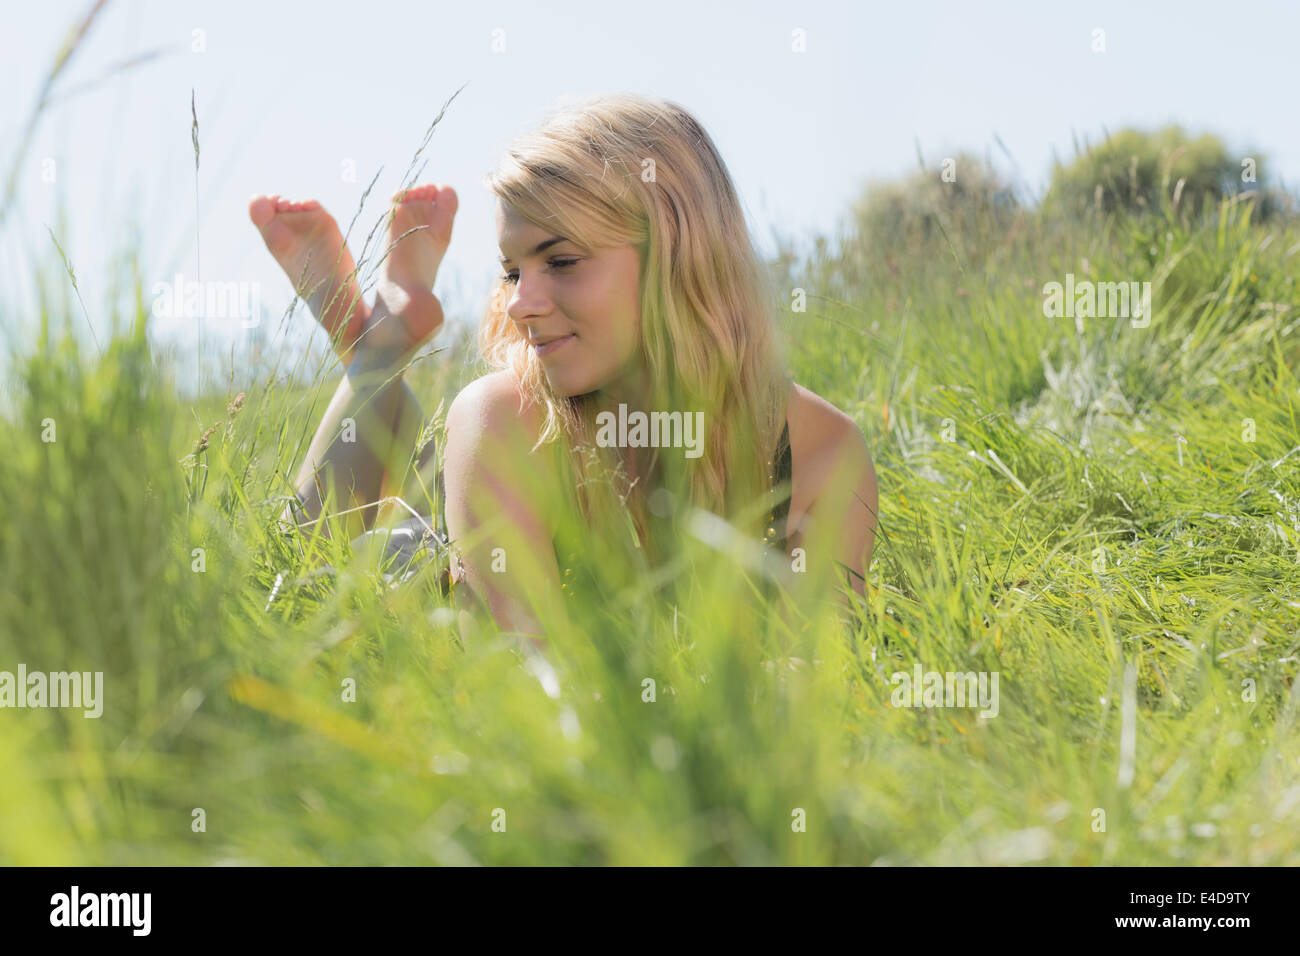 Pretty blonde in sundress lying on grass - Stock Image